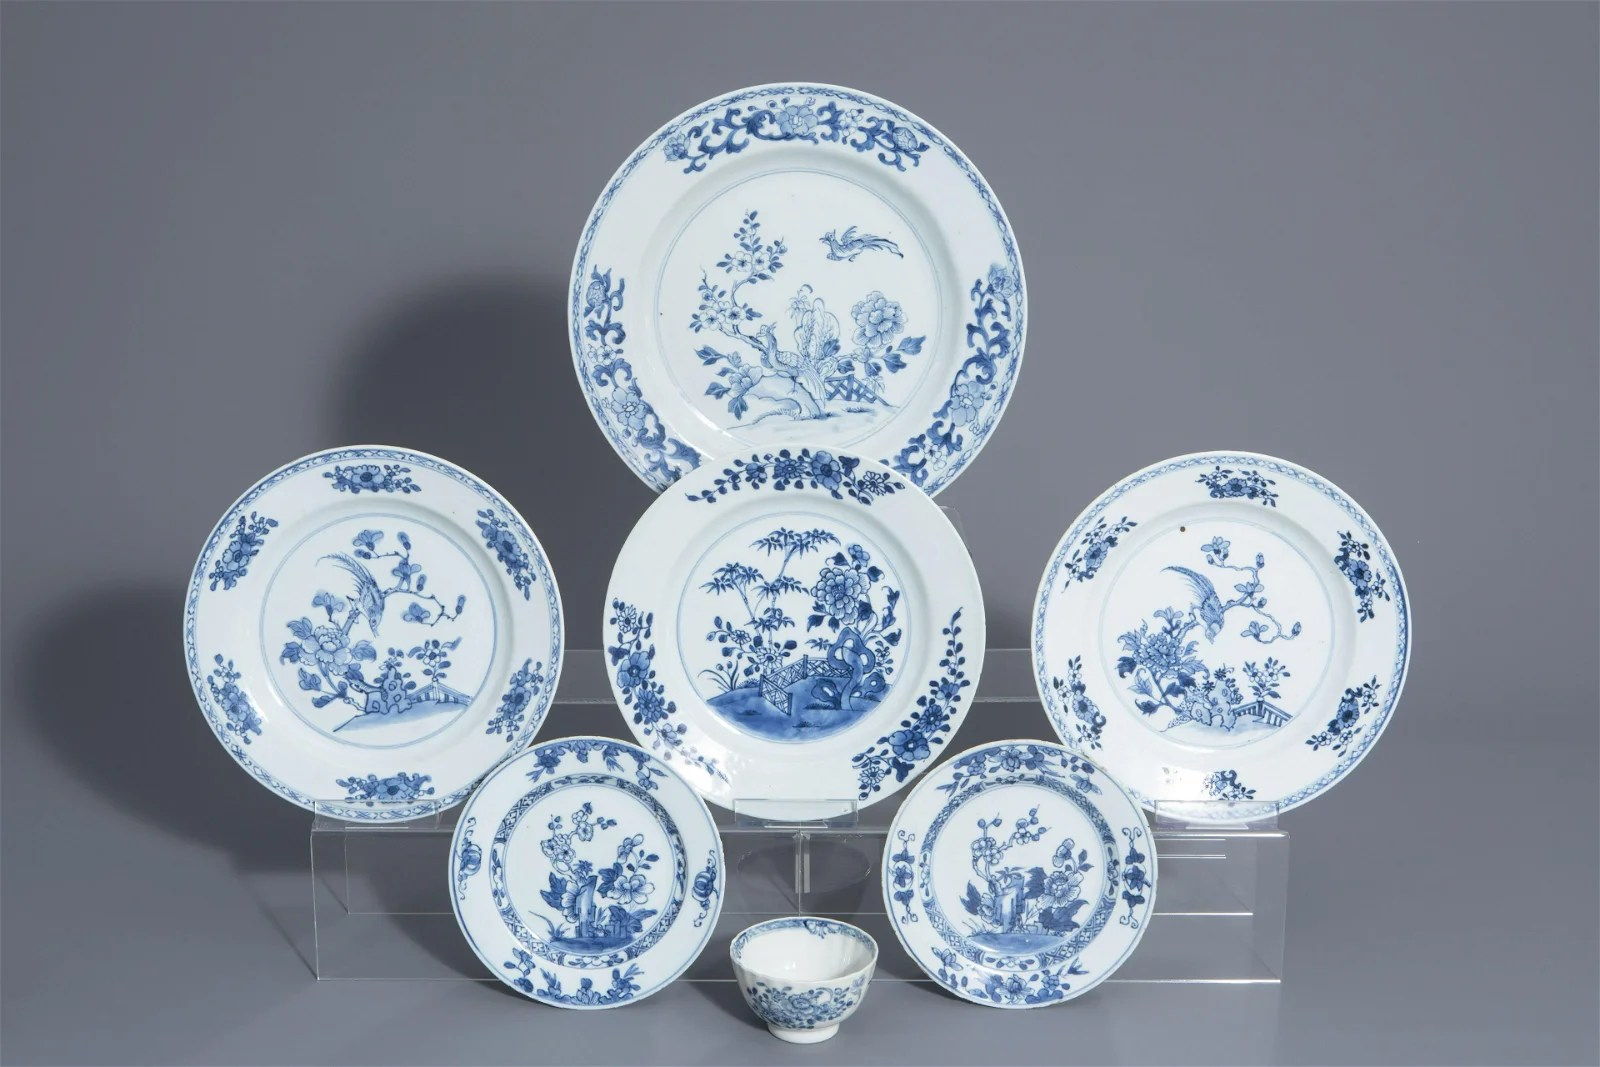 Six Chinese blue and white plates and a cup with floral